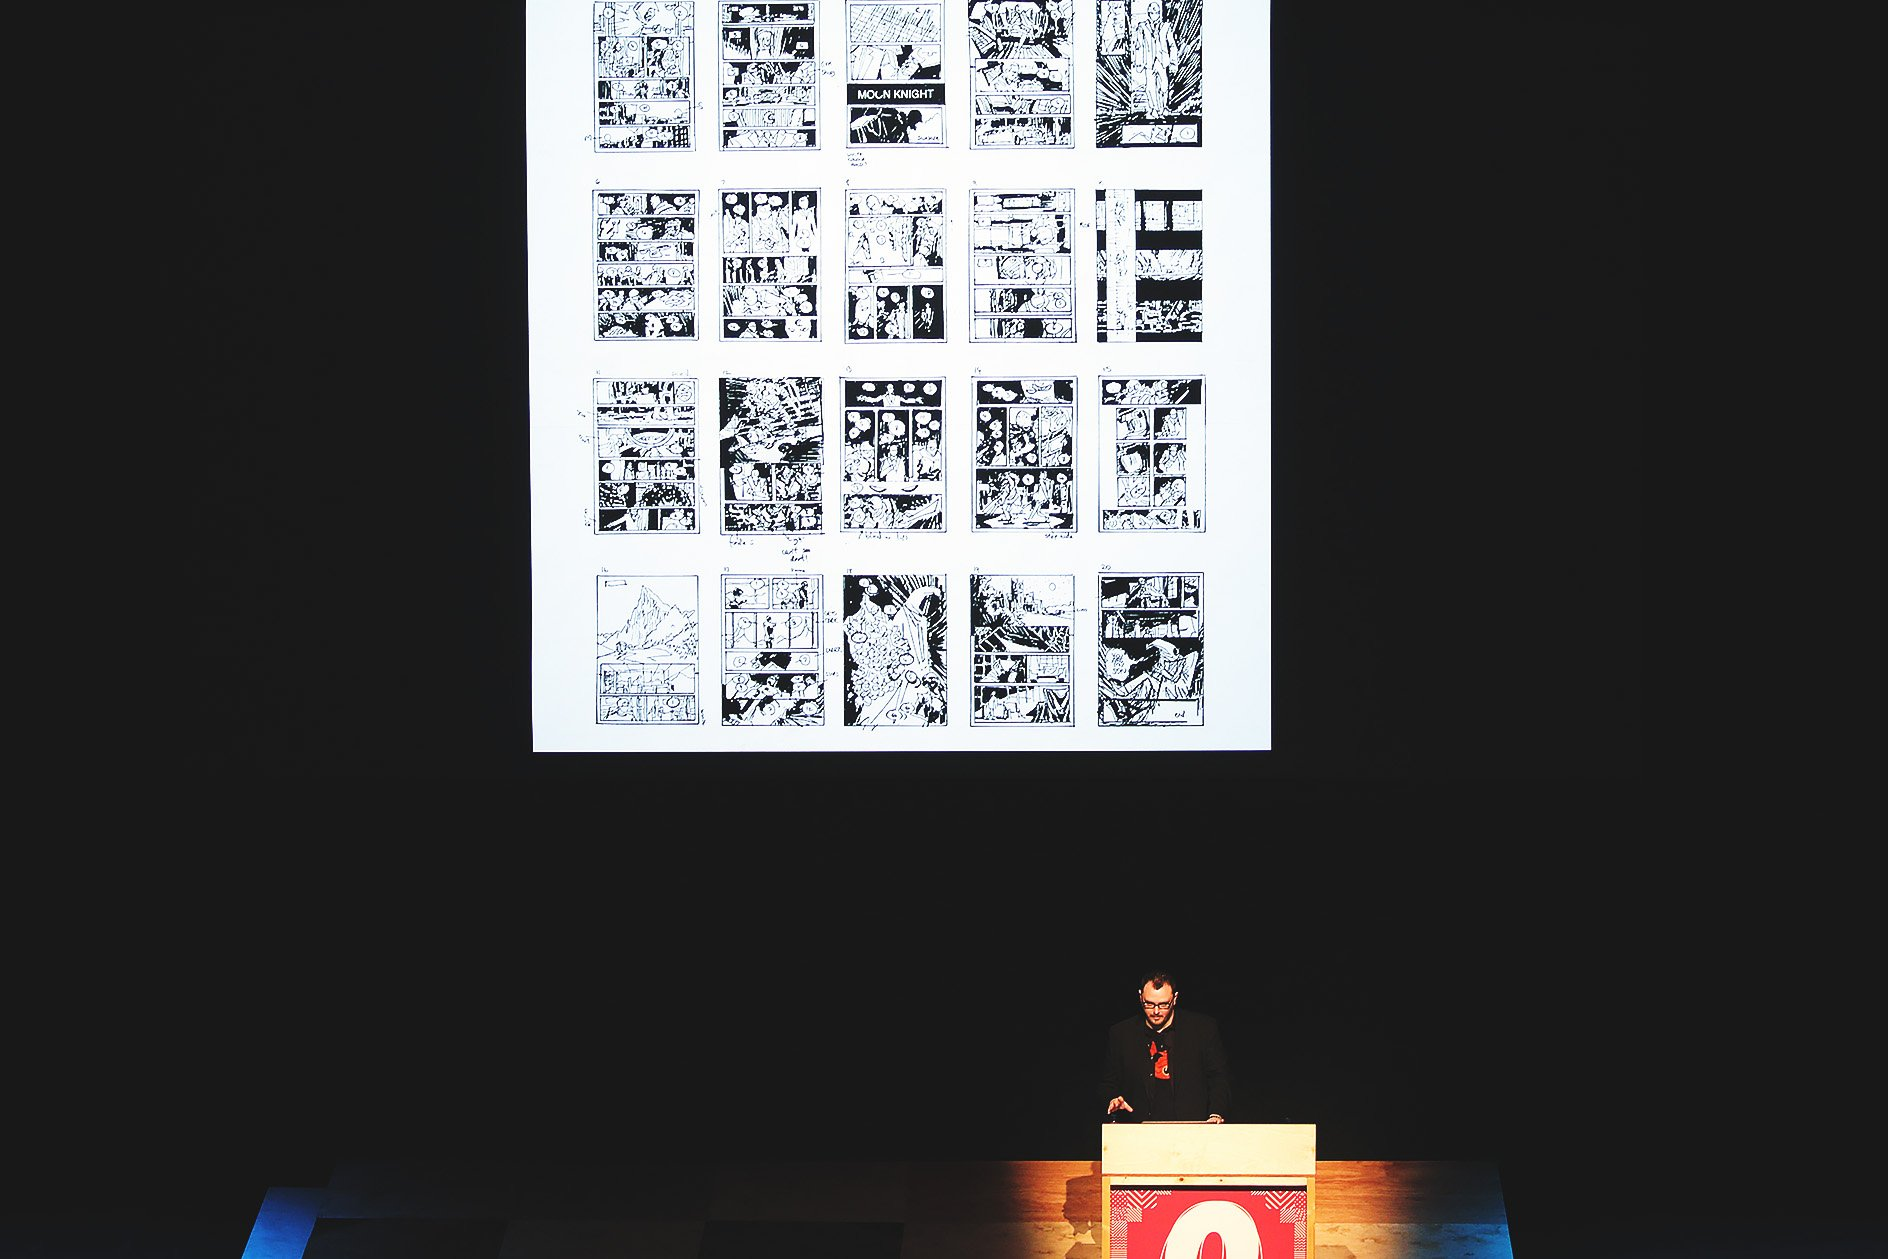 Declan Shalvey at OFFSET 2015 – Initial small sketches